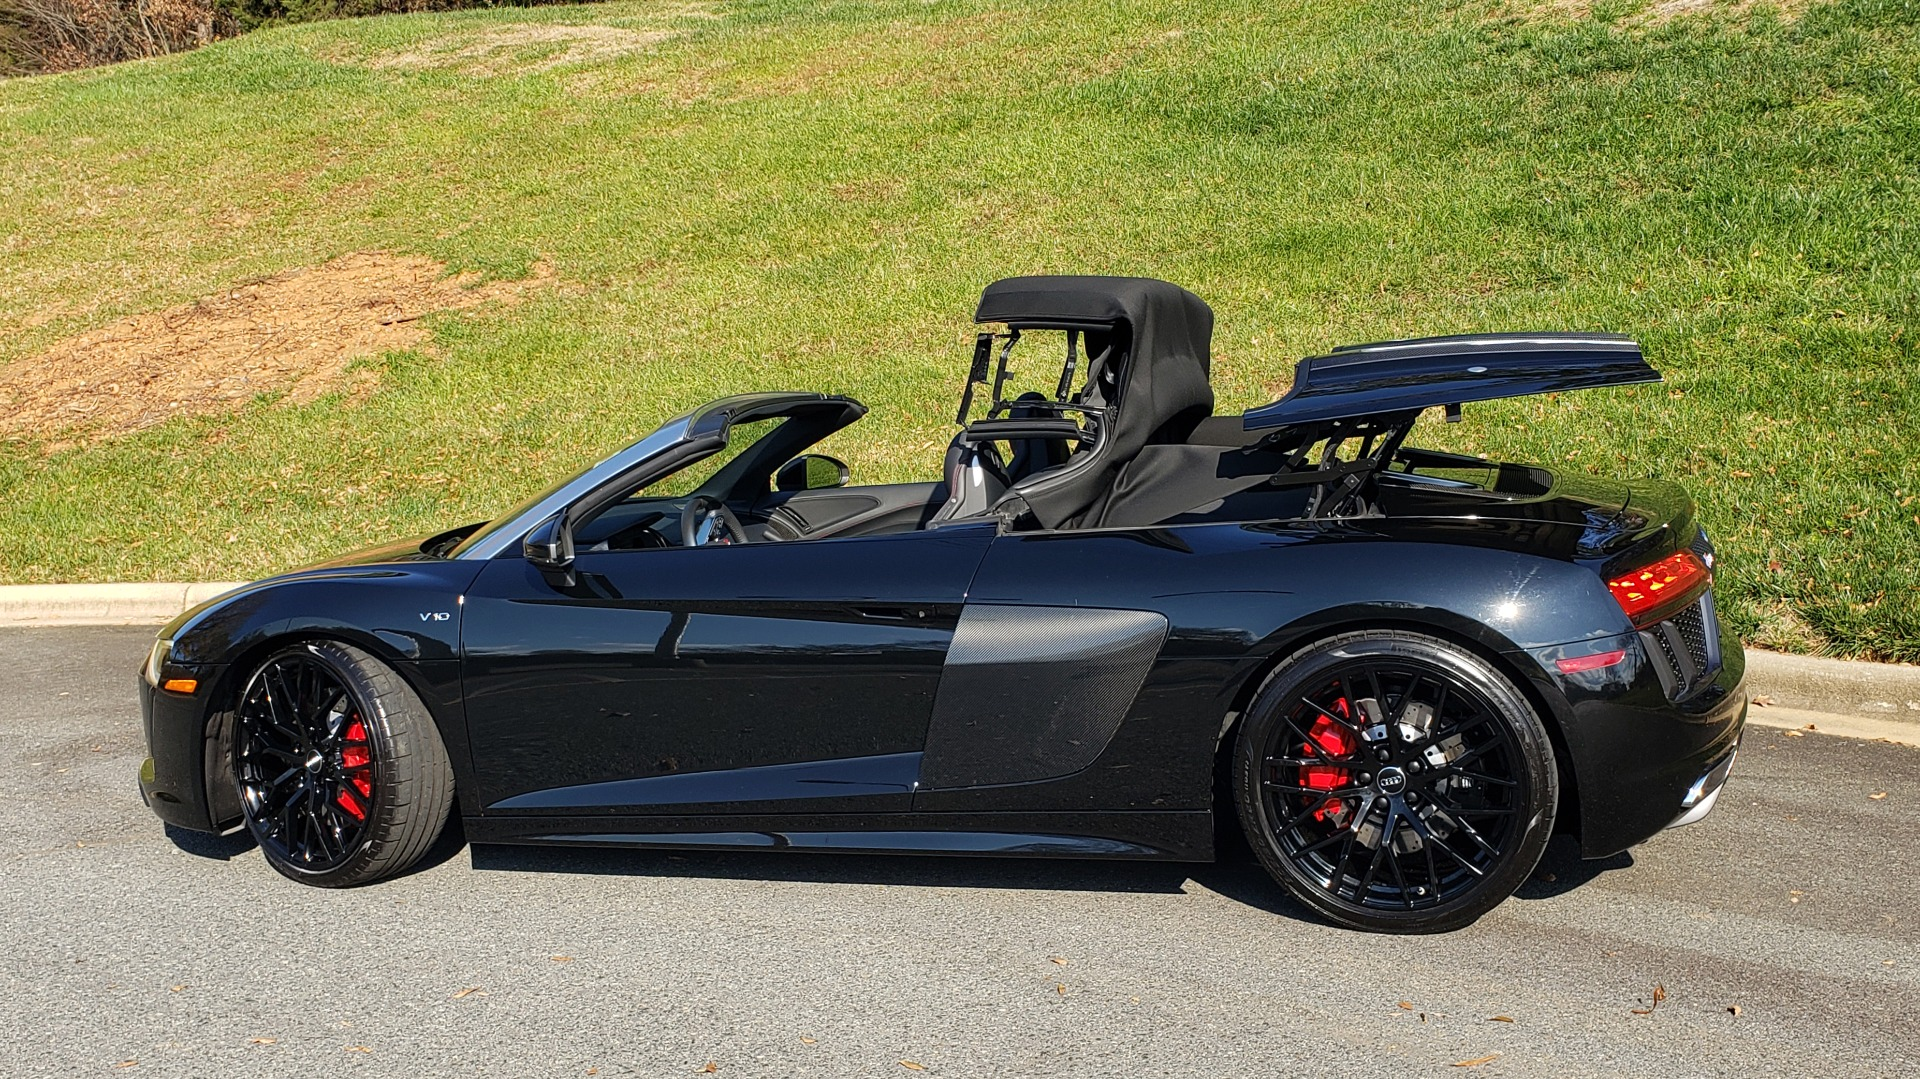 Used 2017 Audi R8 SPYDER V10 S-TRONIC / CARBON EXT & INT PKG / NAV / REARVIEW for sale Sold at Formula Imports in Charlotte NC 28227 9